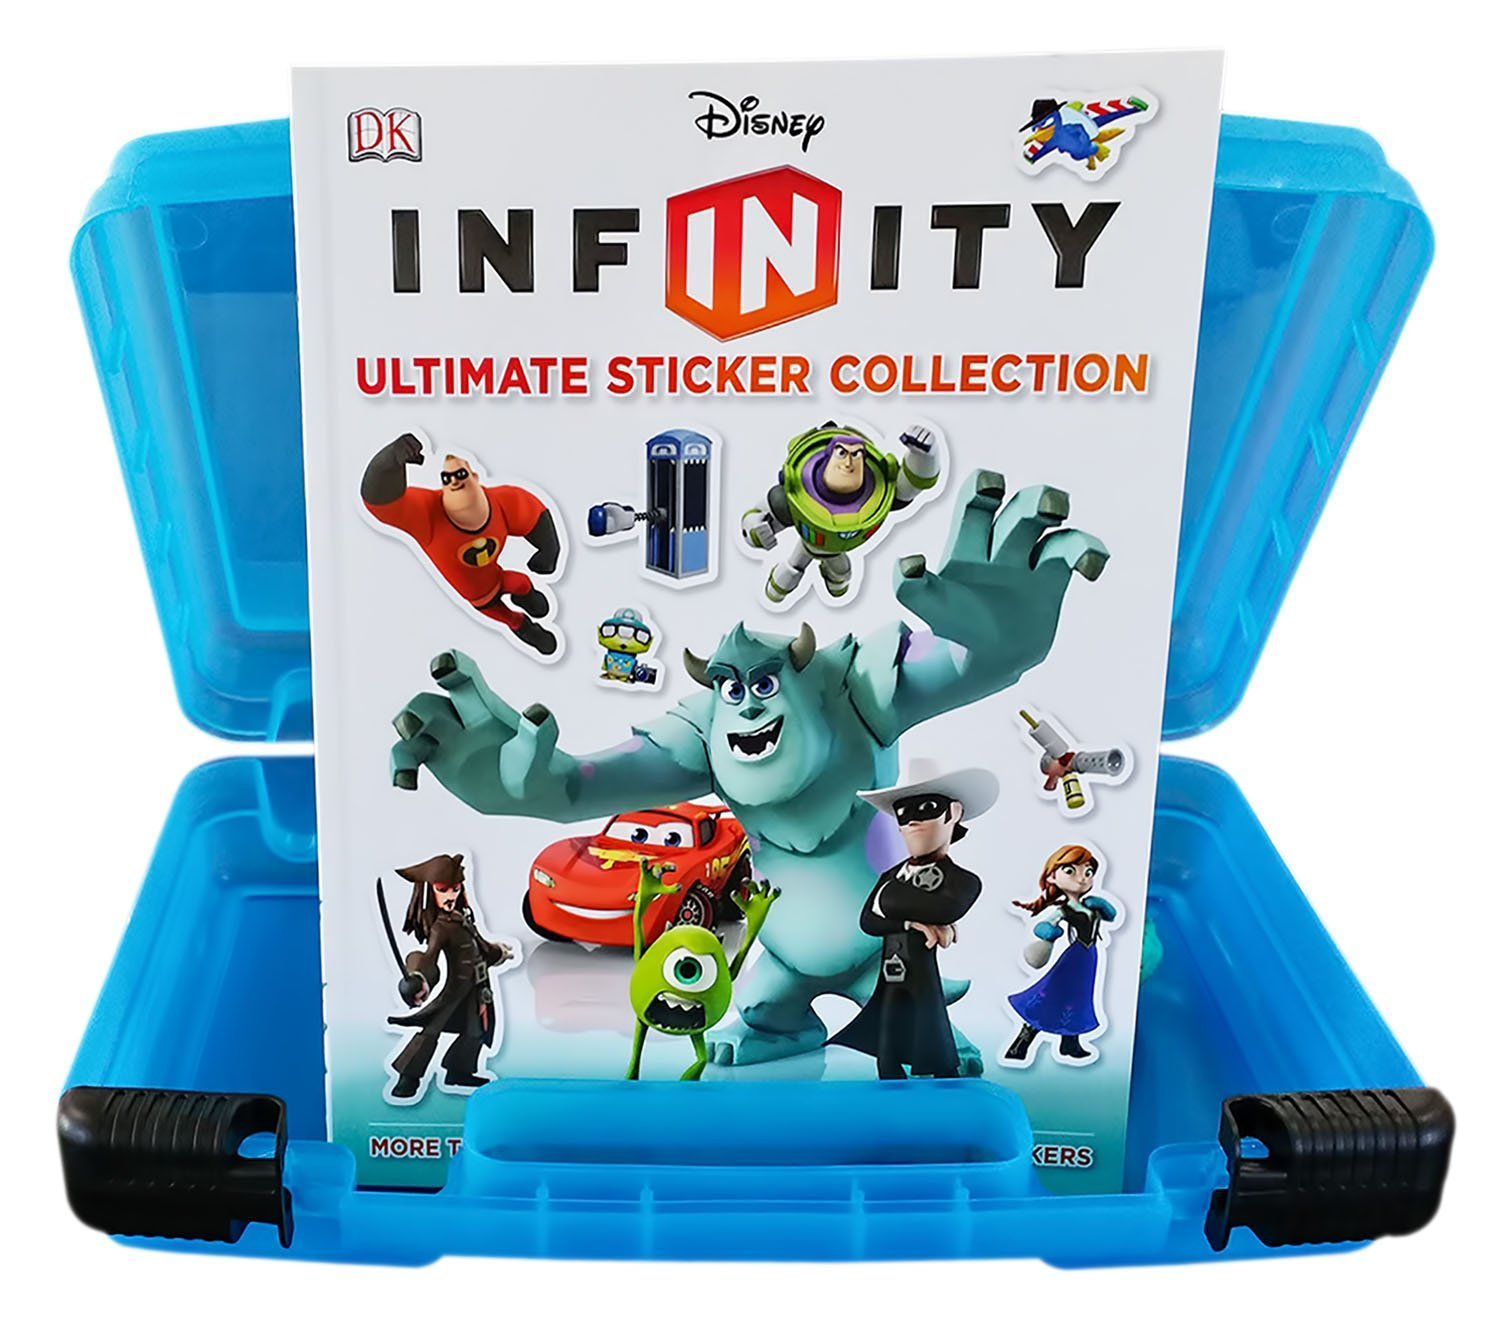 Official Disney Infinity Sticker Book + Video Game Character Compatible Storage Organizer. Minifigure Storage... by Life Made Better